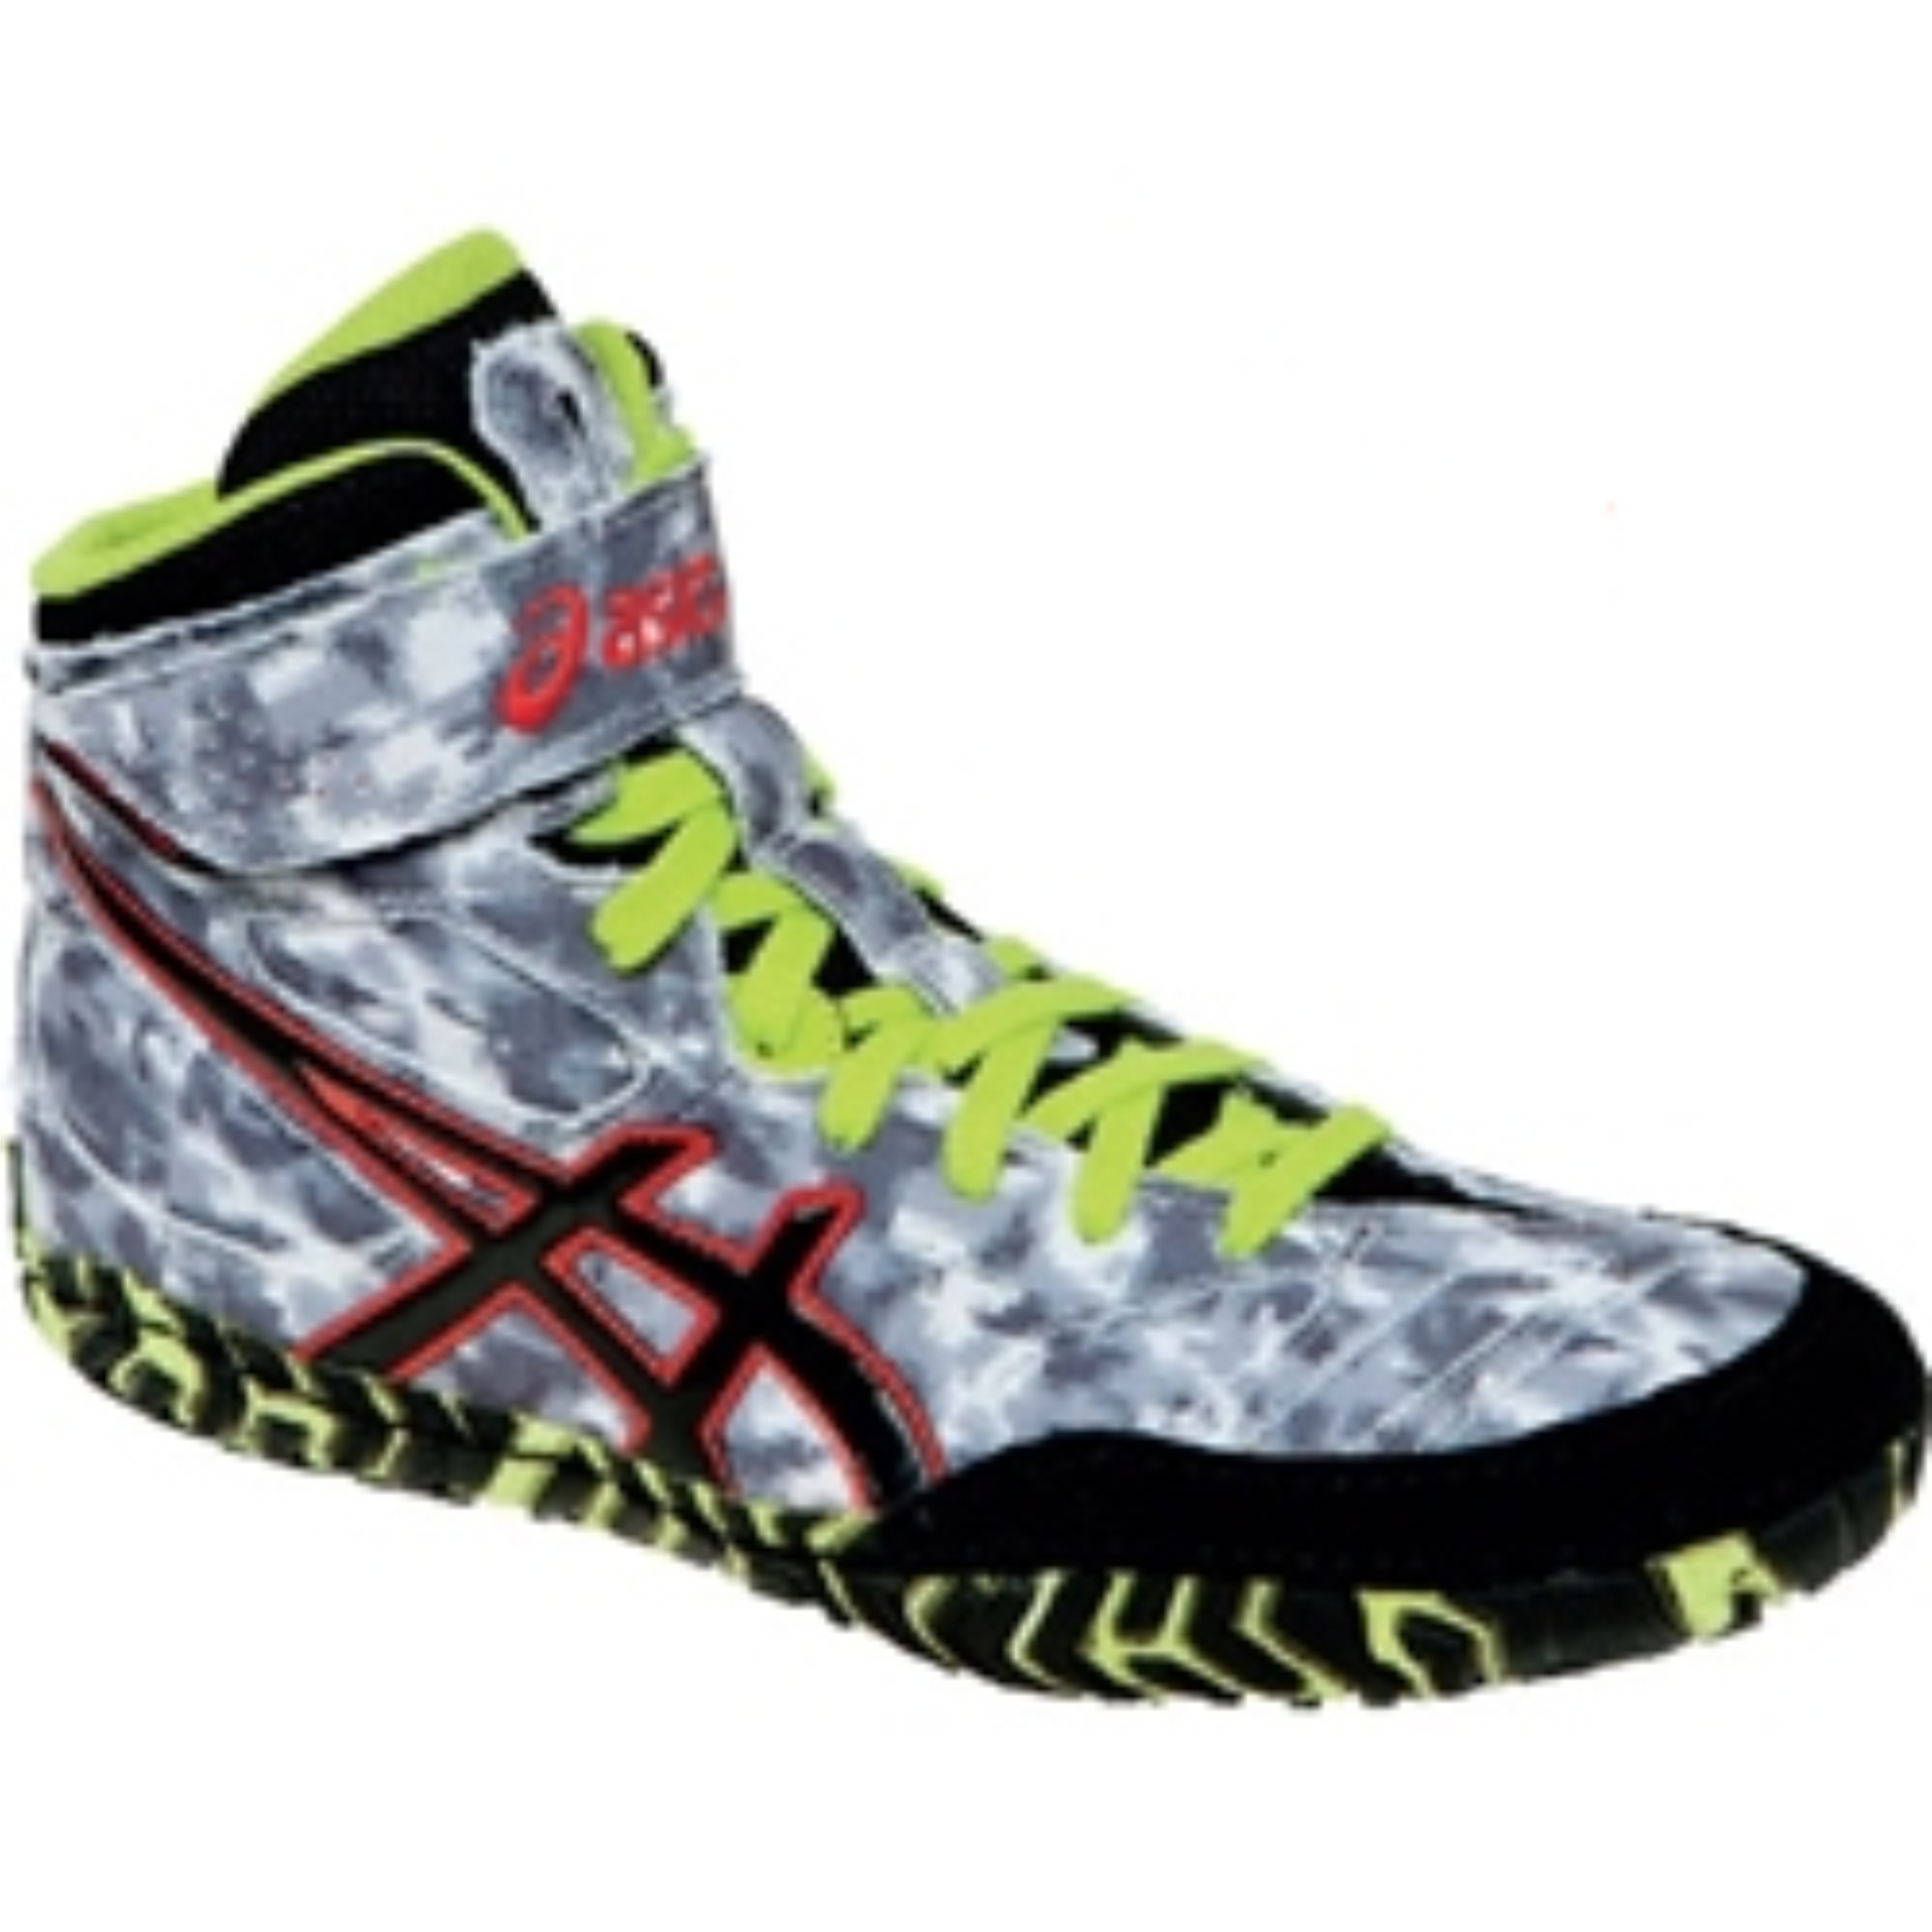 Asics Aggressor Wrestling Shoes - LE - $119.95